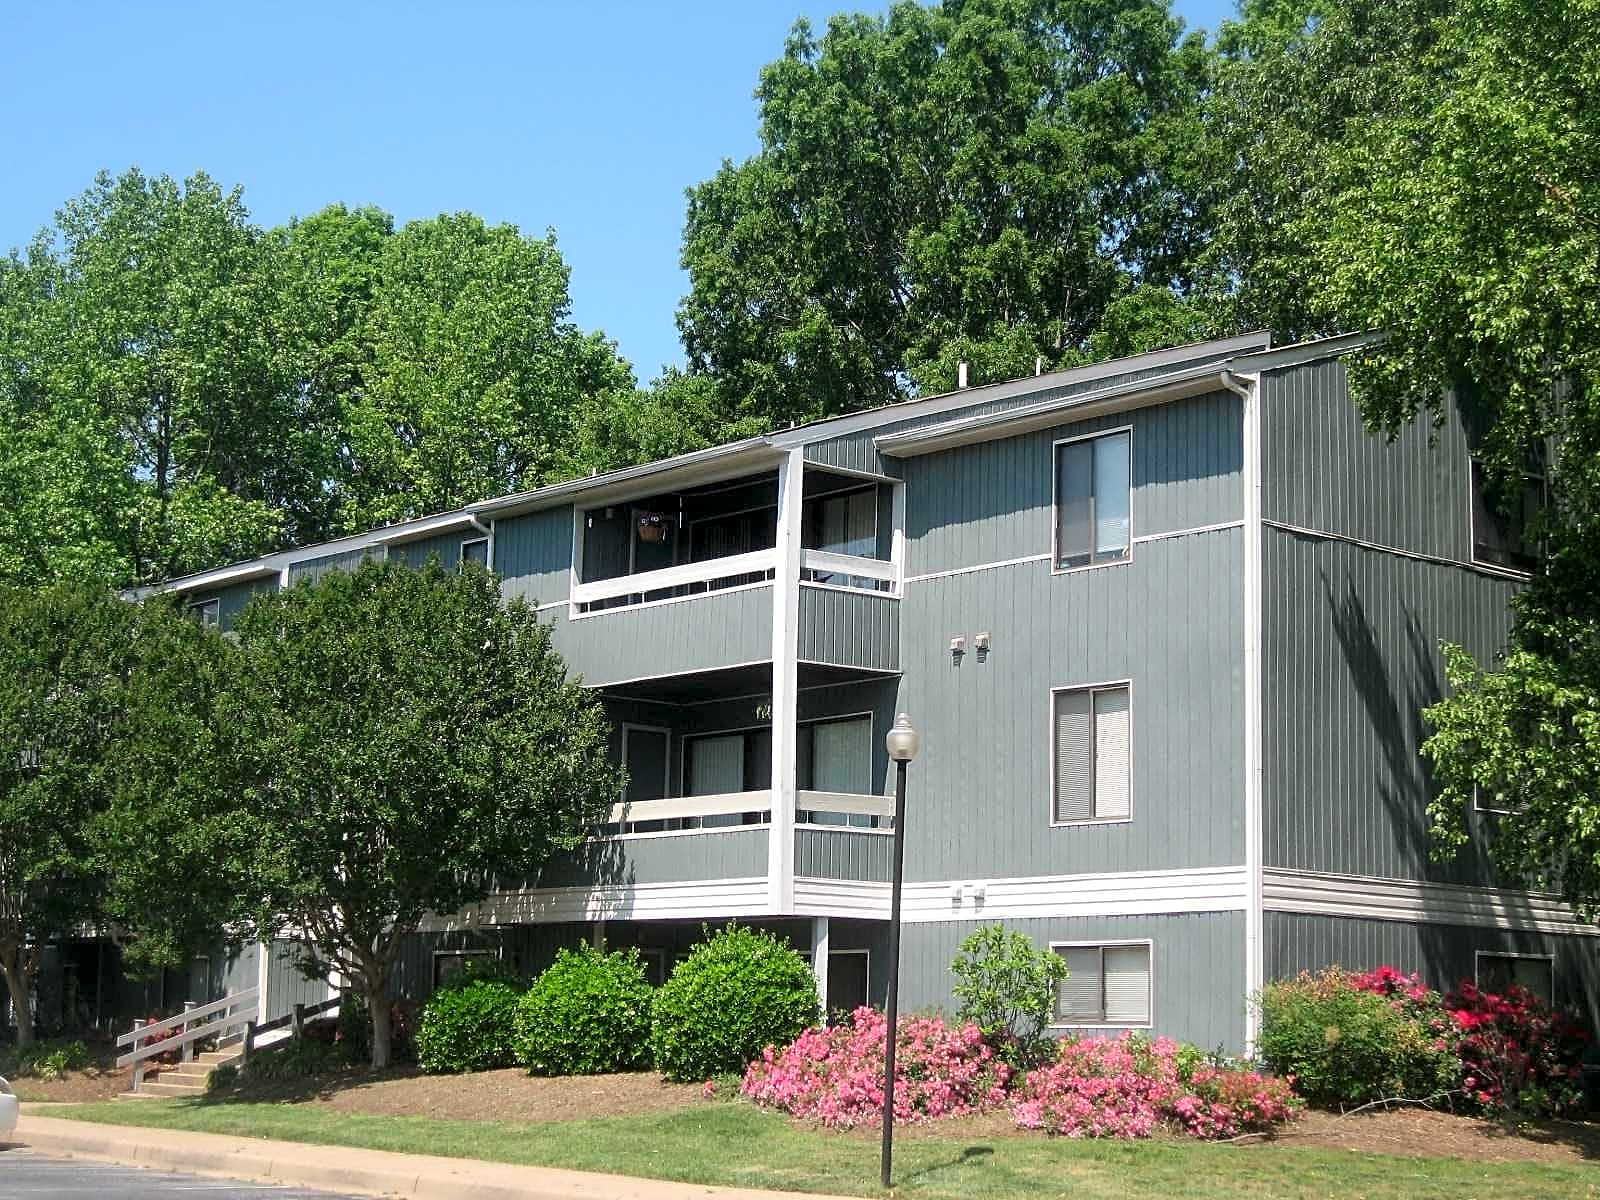 Photo: Newport News Apartment for Rent - $745.00 / month; 1 Bd & 1 Ba